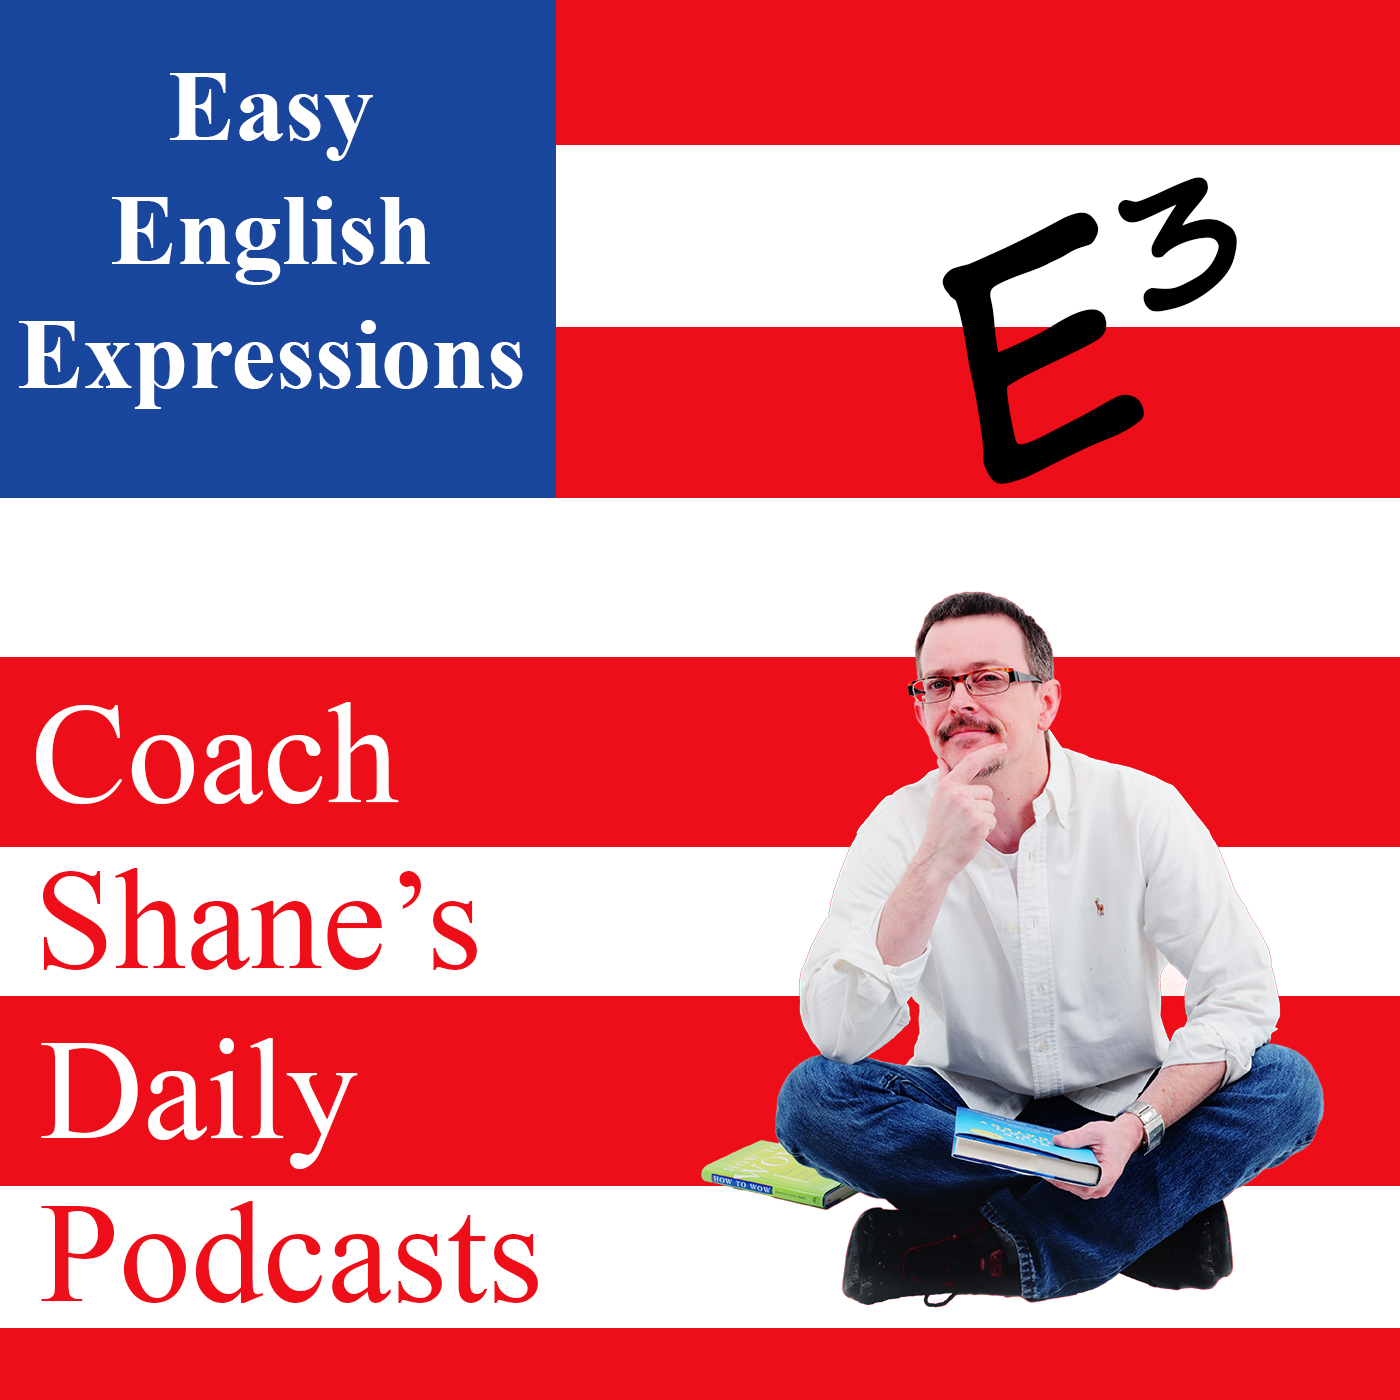 86 Daily Easy English Expression PODCAST—What the HECK is wrong with you?